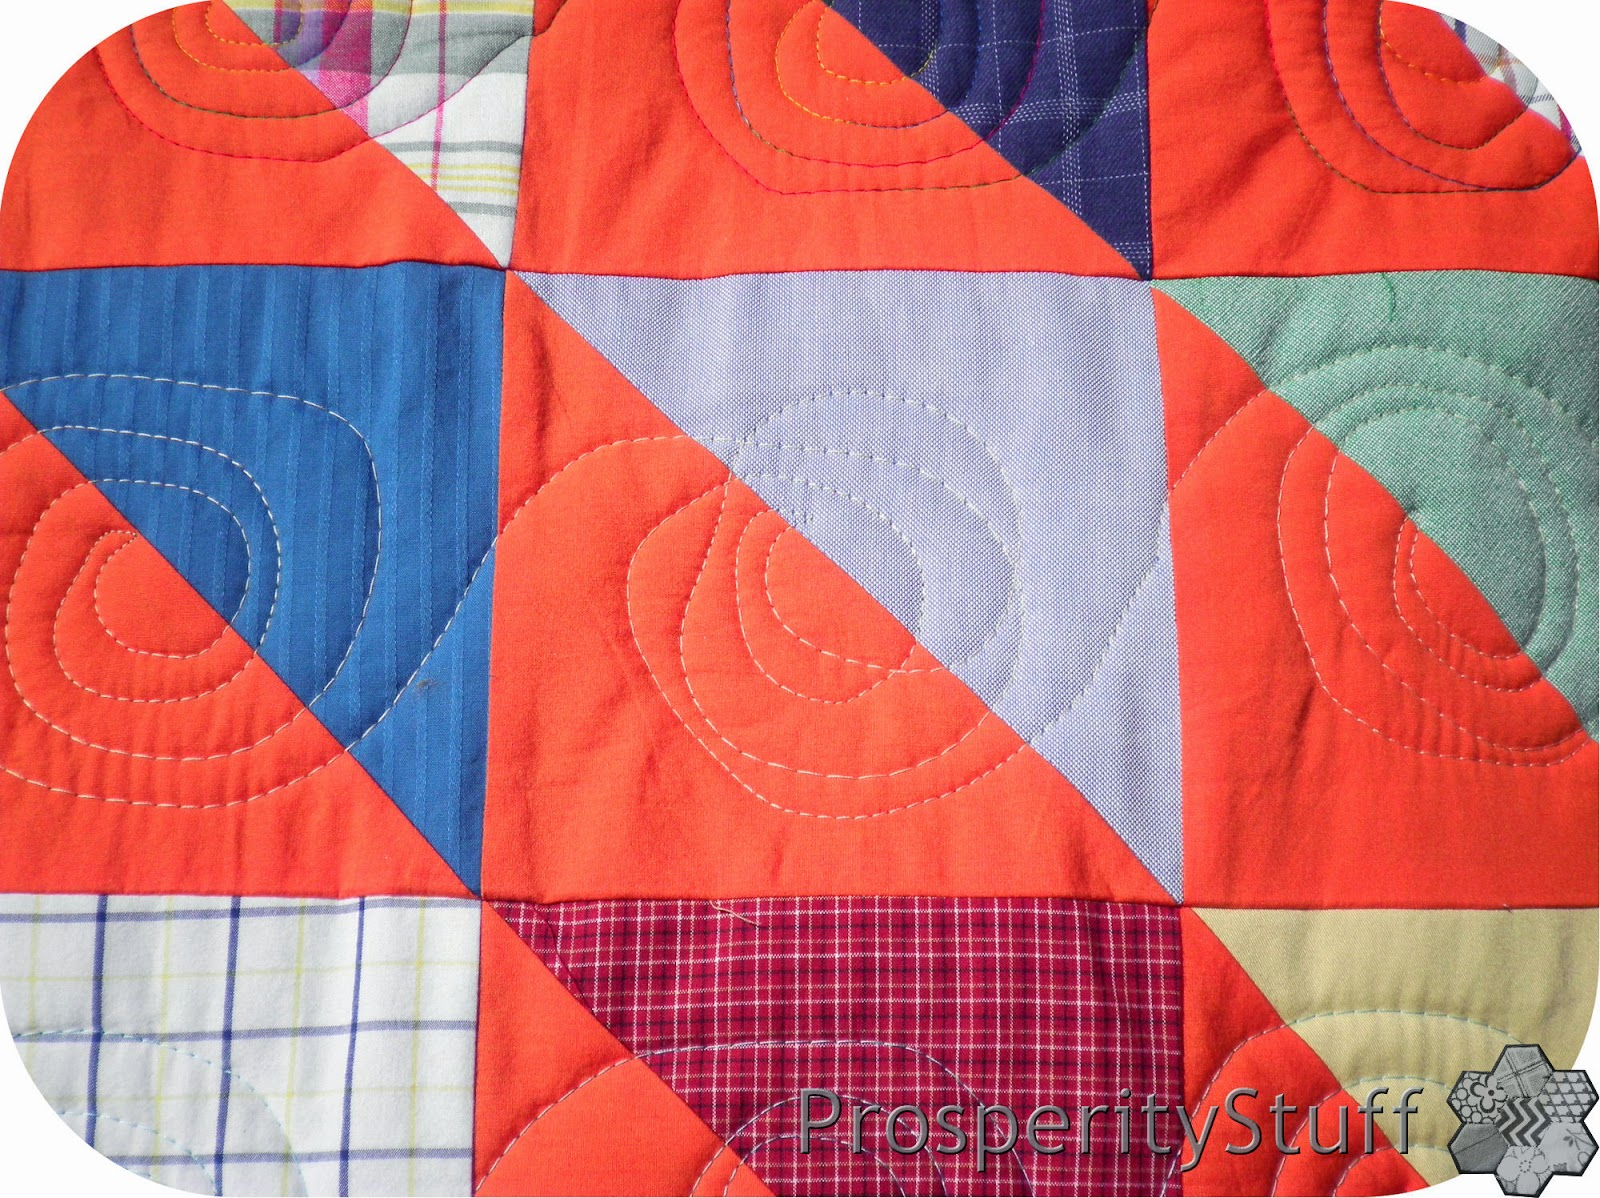 ProsperityStuff Free-Motion (sort of) Spiral Quilting